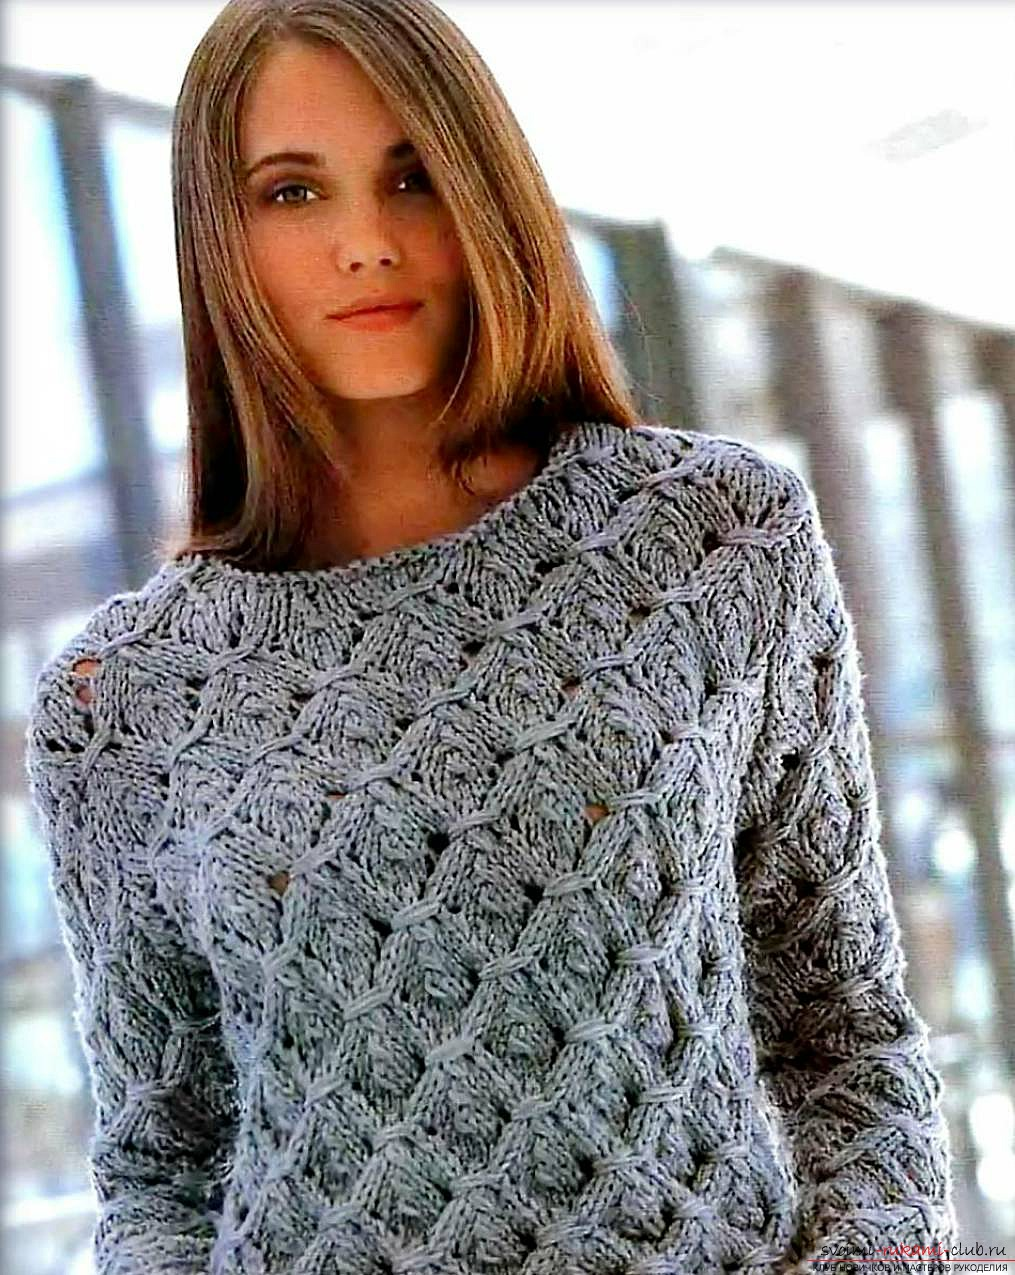 beautiful knitted clothing. Photo №4